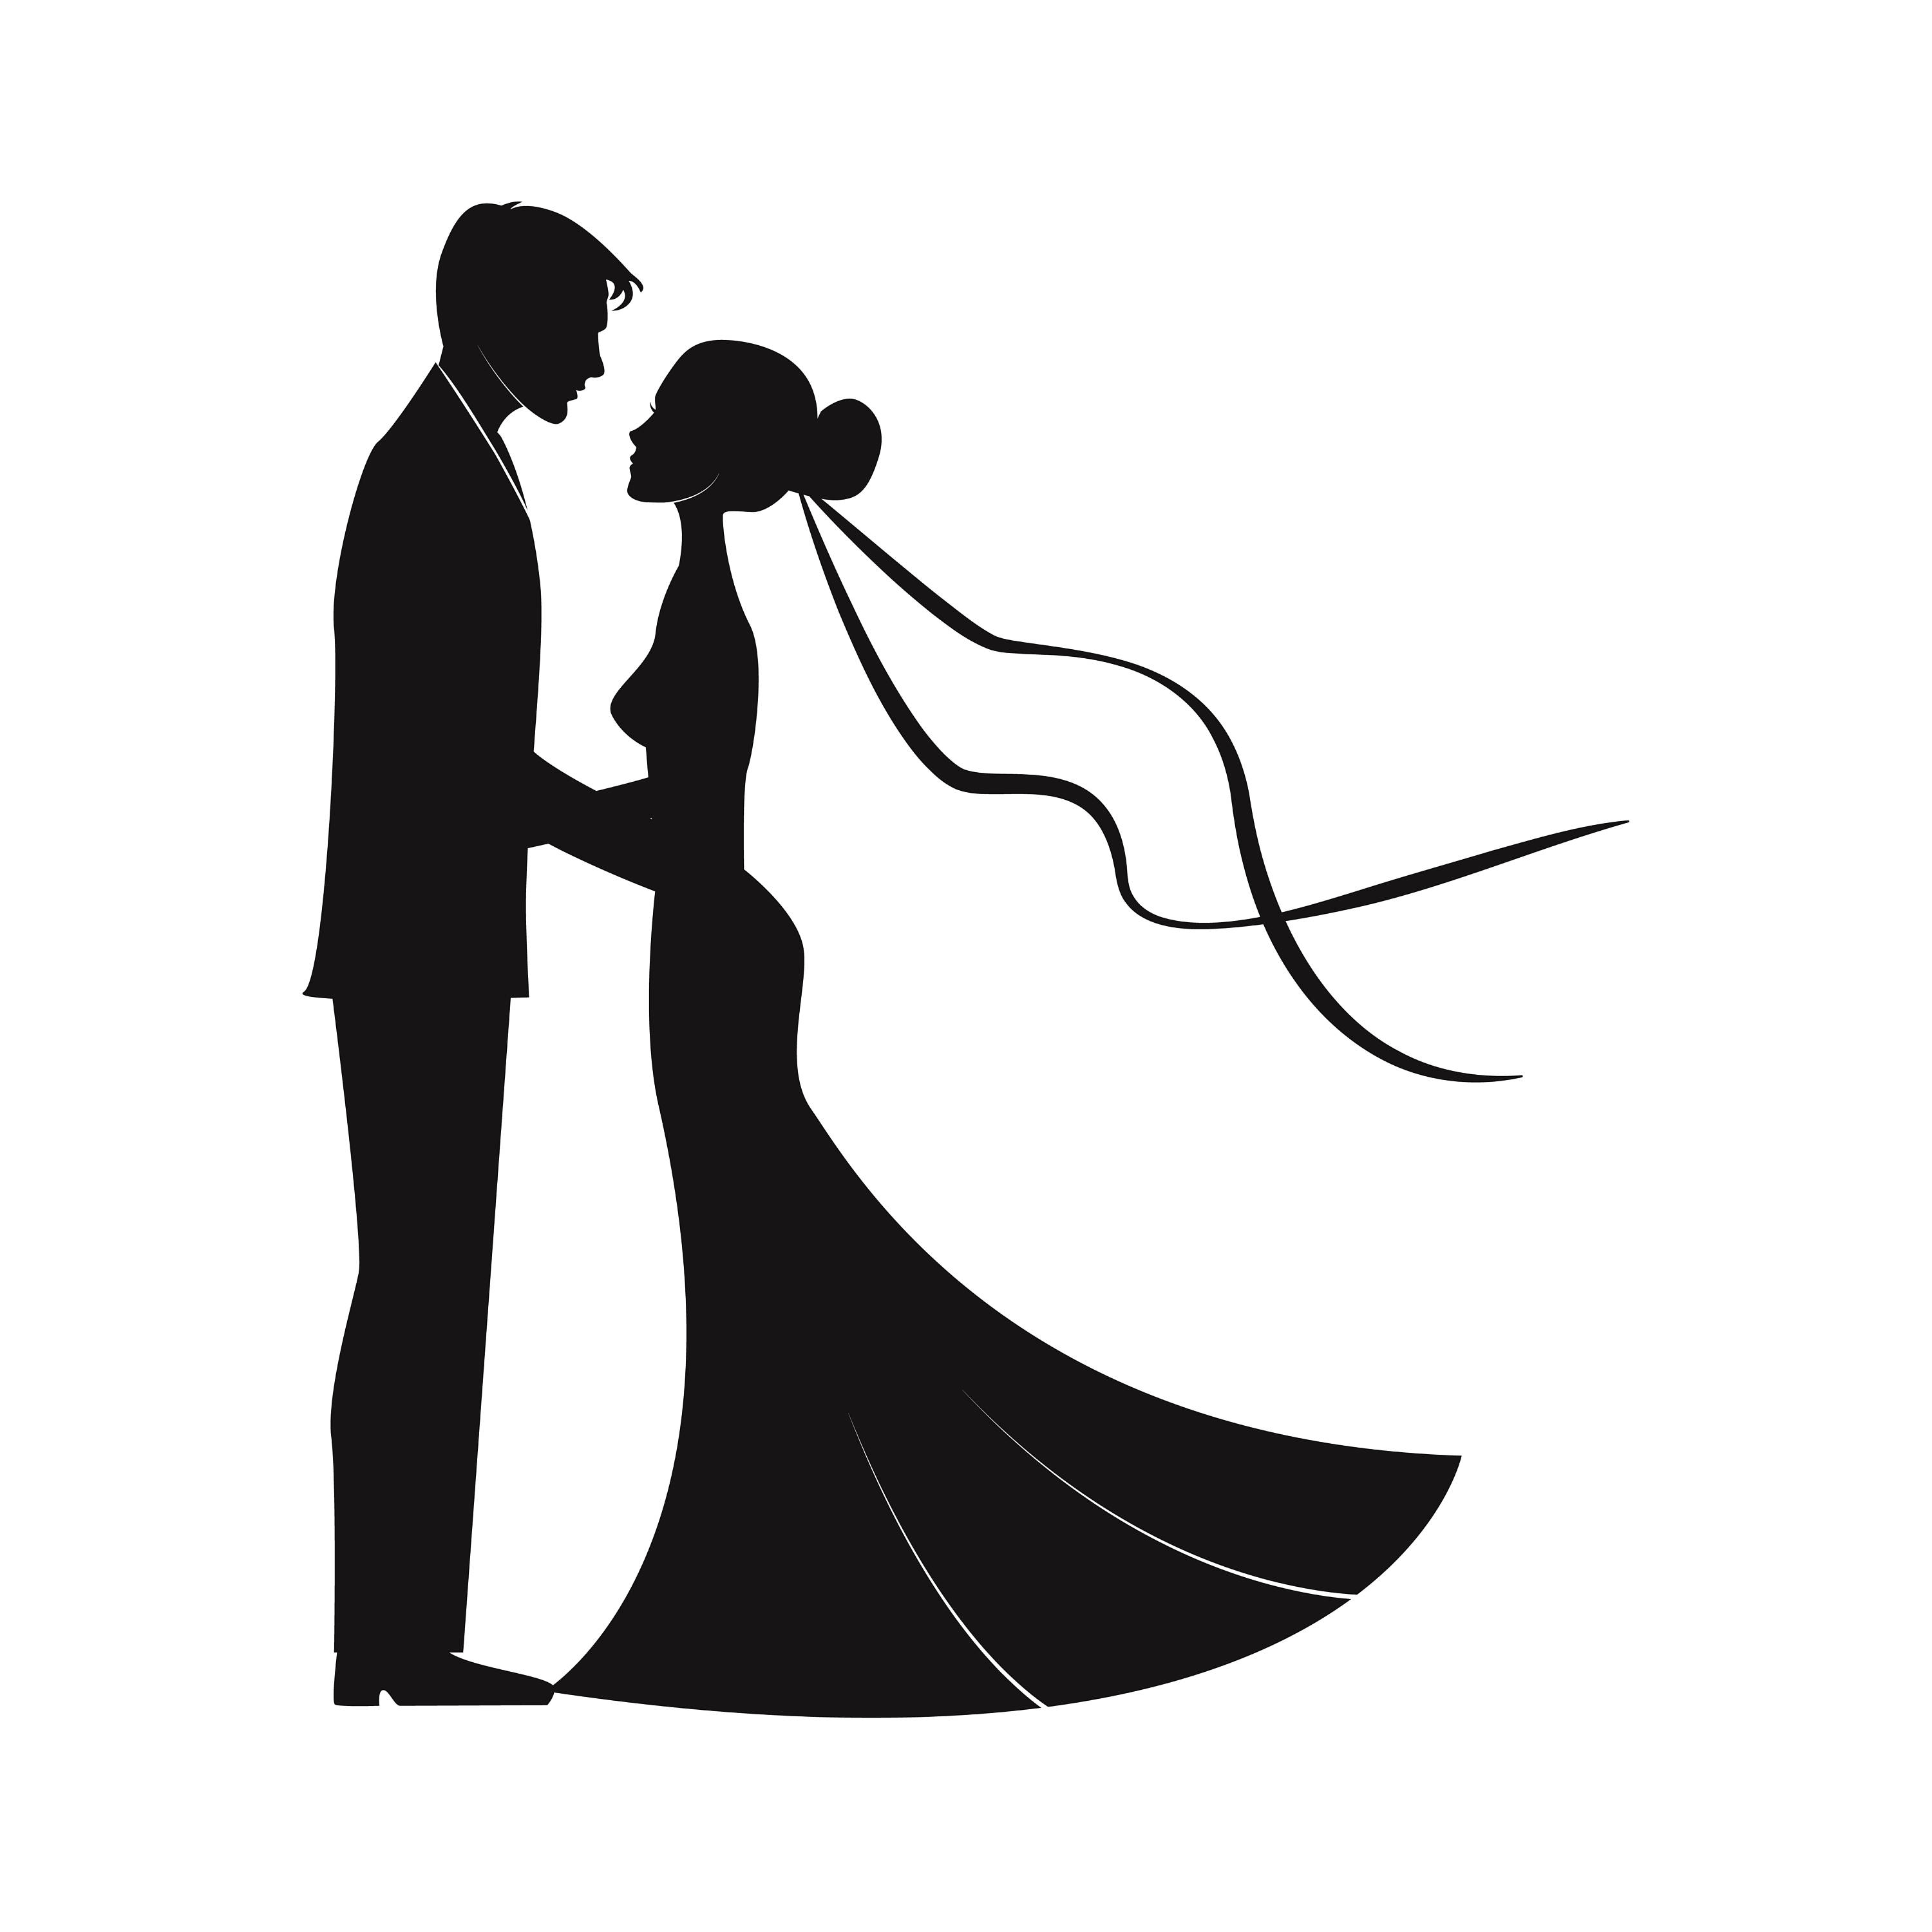 how to draw a wedding couple clipart art wedding couple wedding silhouette bride couple to wedding a draw how